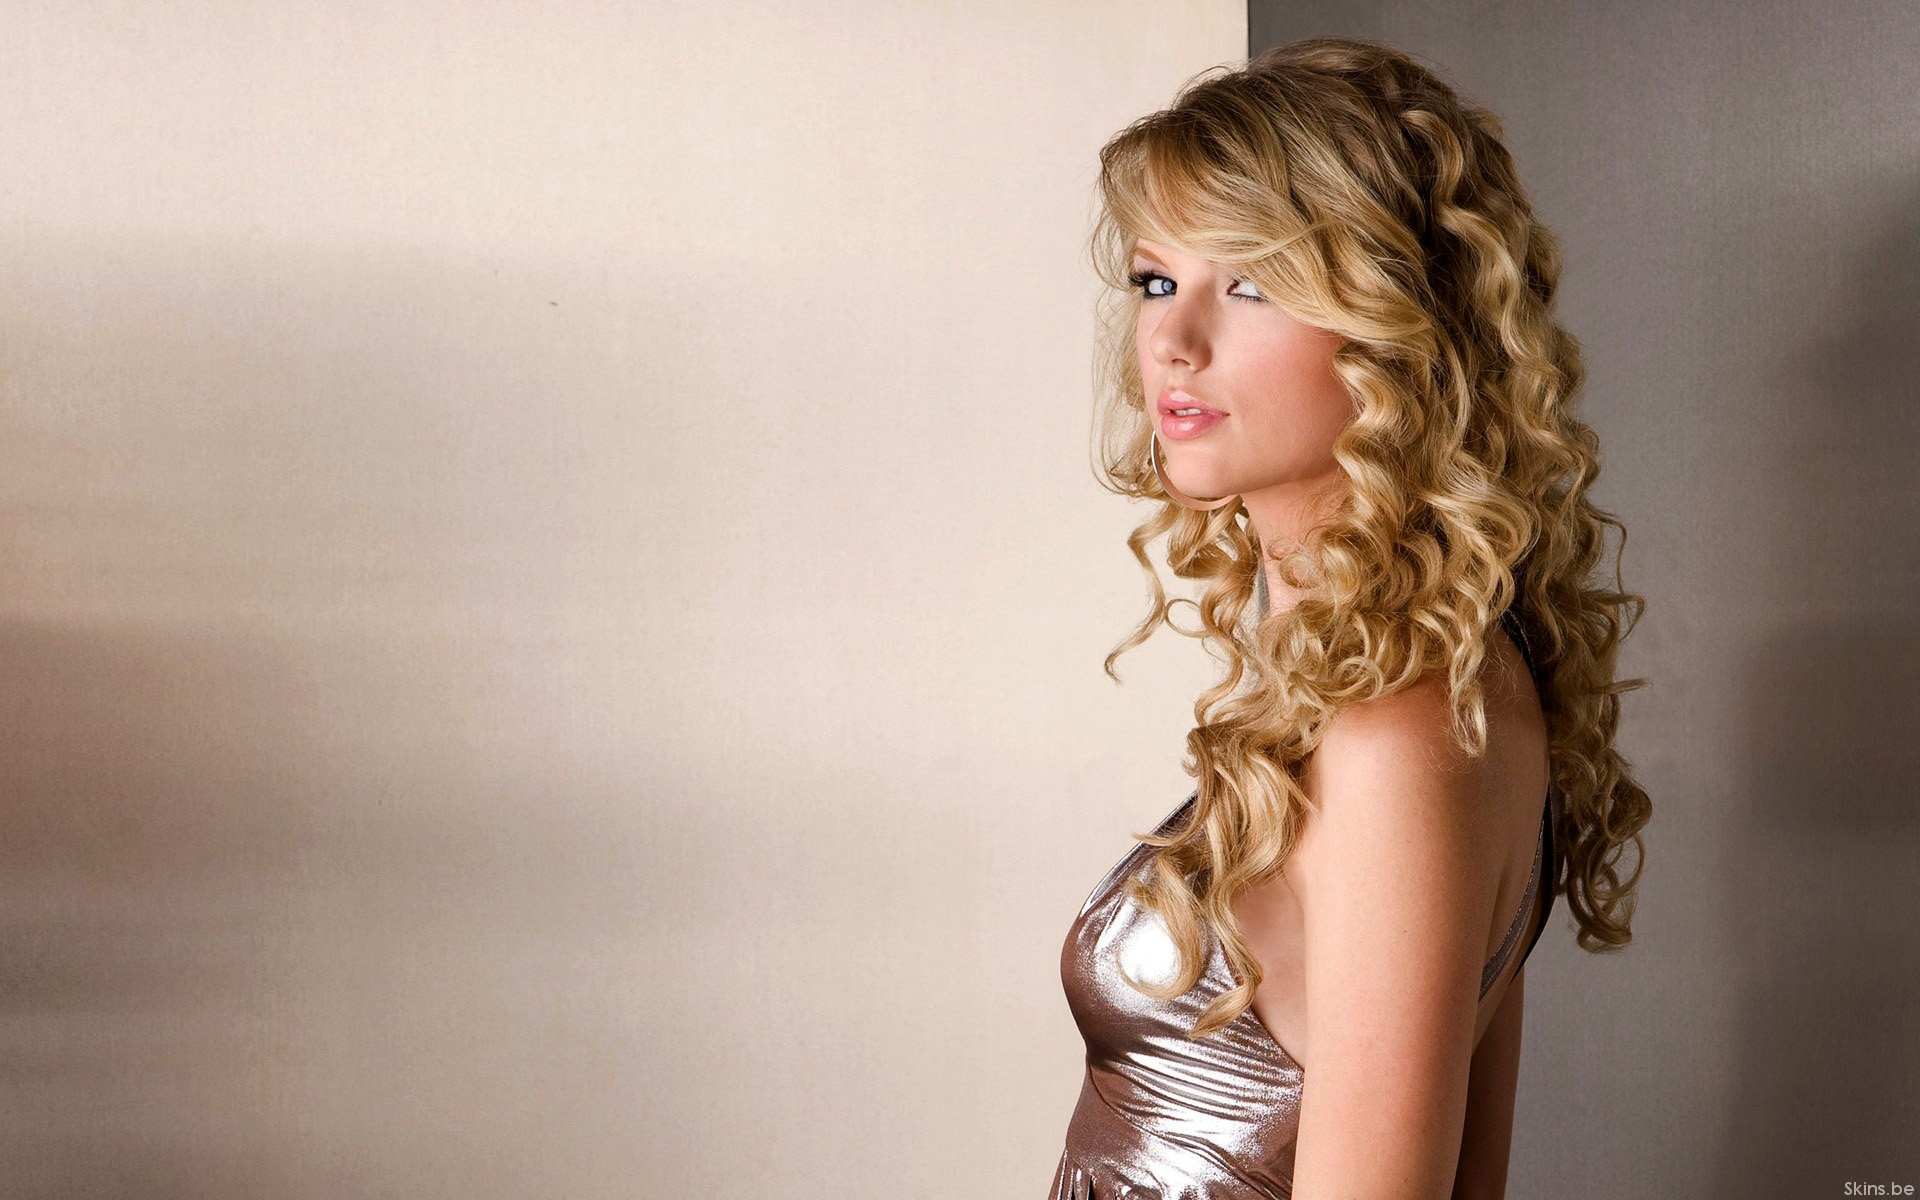 El Peinado De Taylor Swift Wallpaper 886174